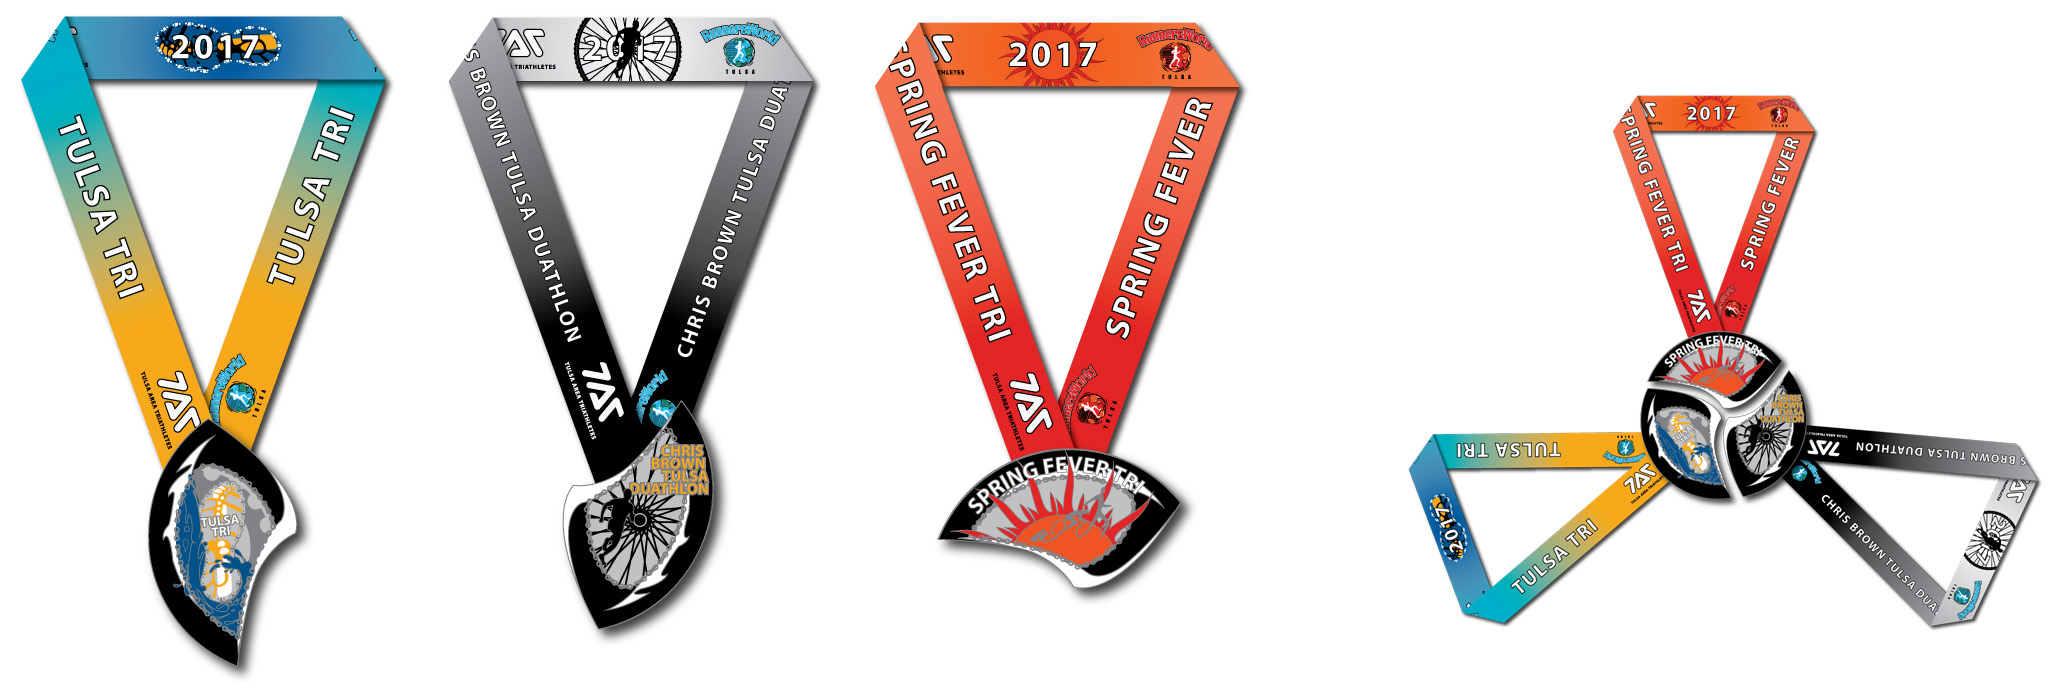 2017 TAT Race Series Medals for Spring Fever Sprint Triathlon, Tulsa Triathlon and Chris